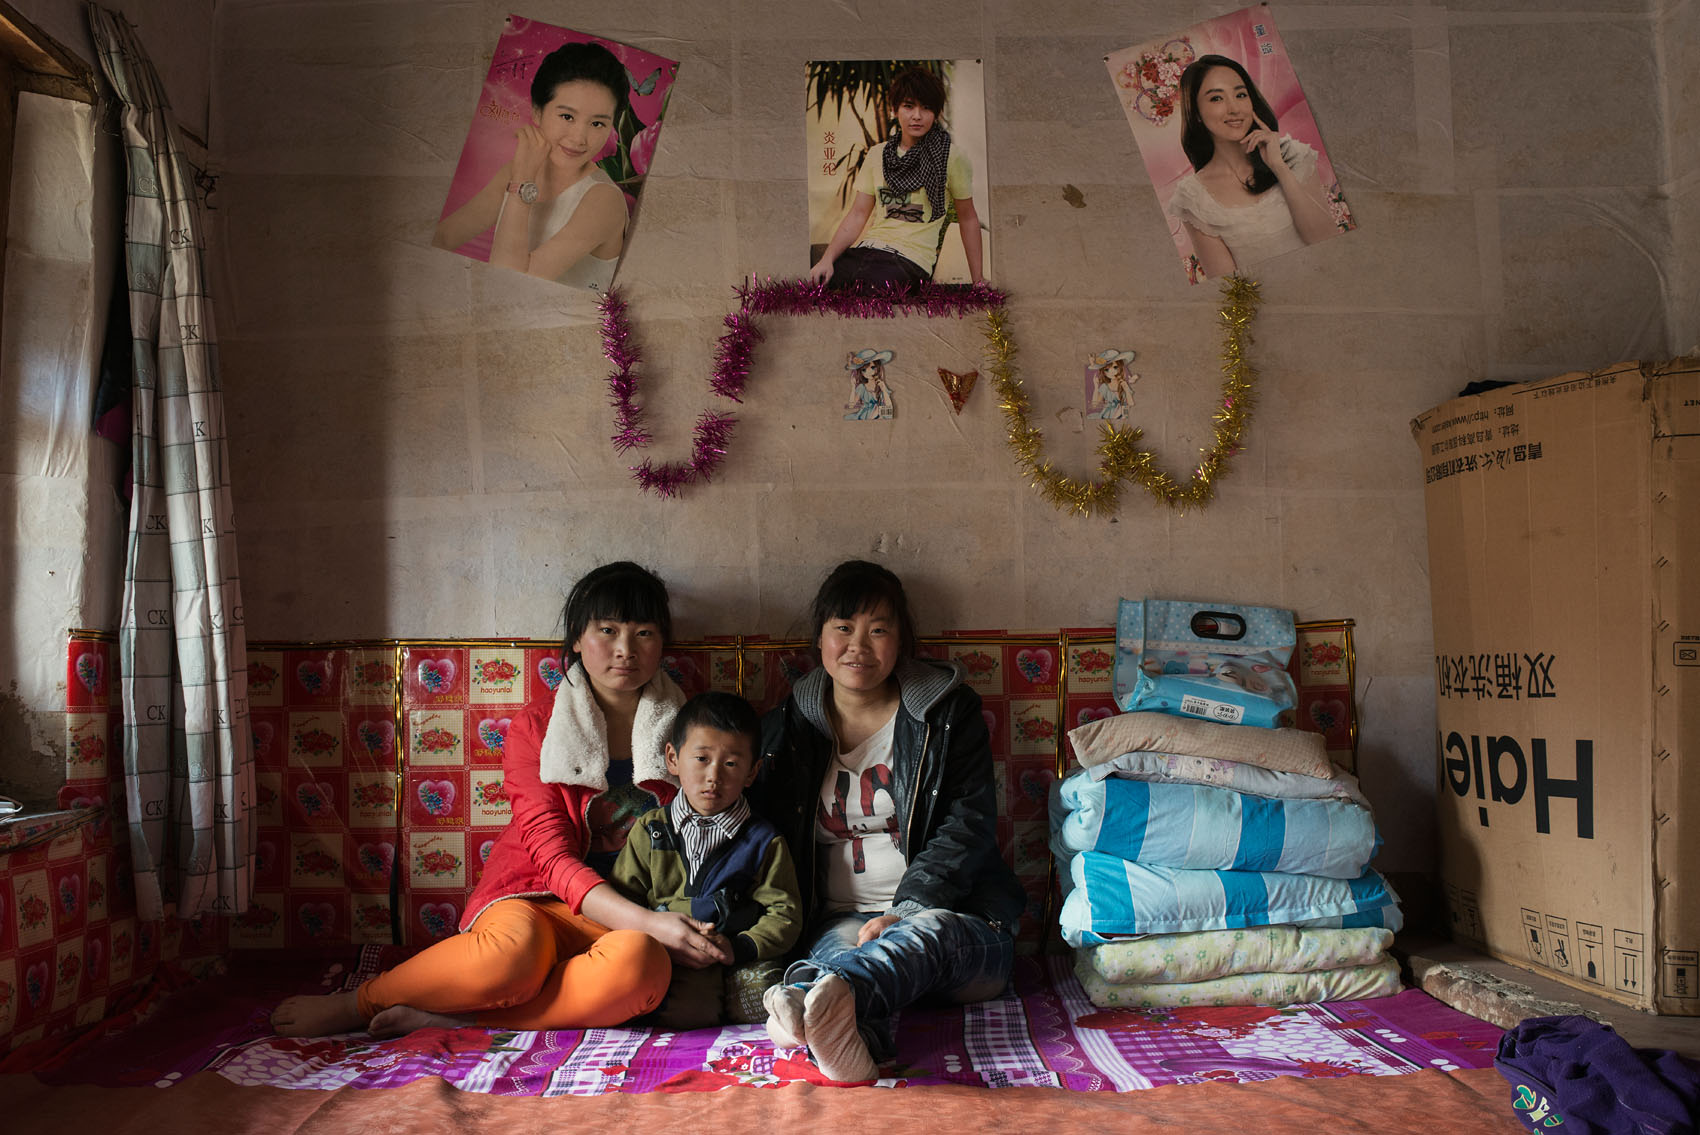 Jinshan Village From left to right : Wang Yandi (16) Wang Lei (5) Wang Yanxia (21) Lei'smother is working over a thousand kilometers awayin a supermarket in Xinjiang where the wages are higher.Yandi & Yanxia, two sisters,are taking care of their little nephew. They are on their own as their parents have passed away.  They will soon move to a new house the family is having built nearby.